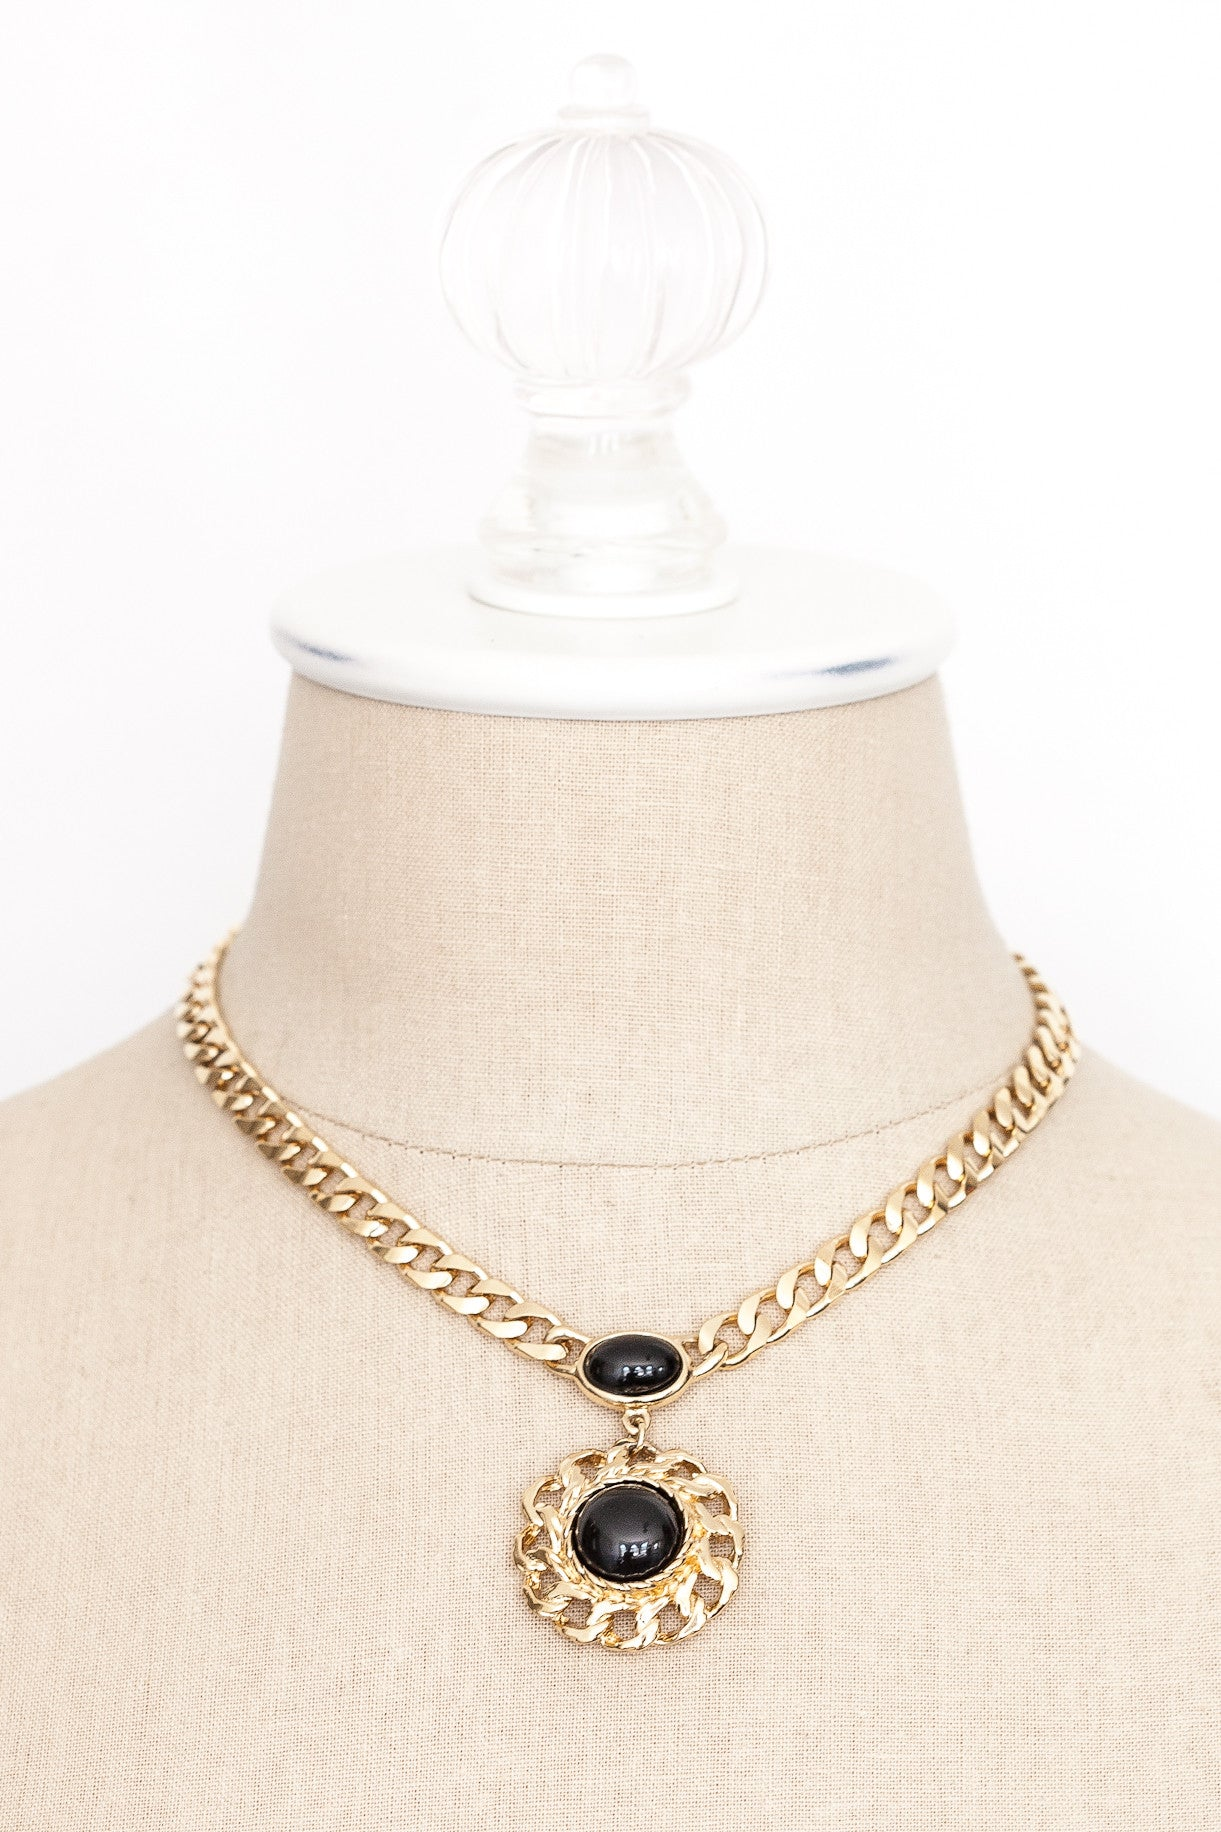 80's__Trifari__Black Chain Pendant Necklace